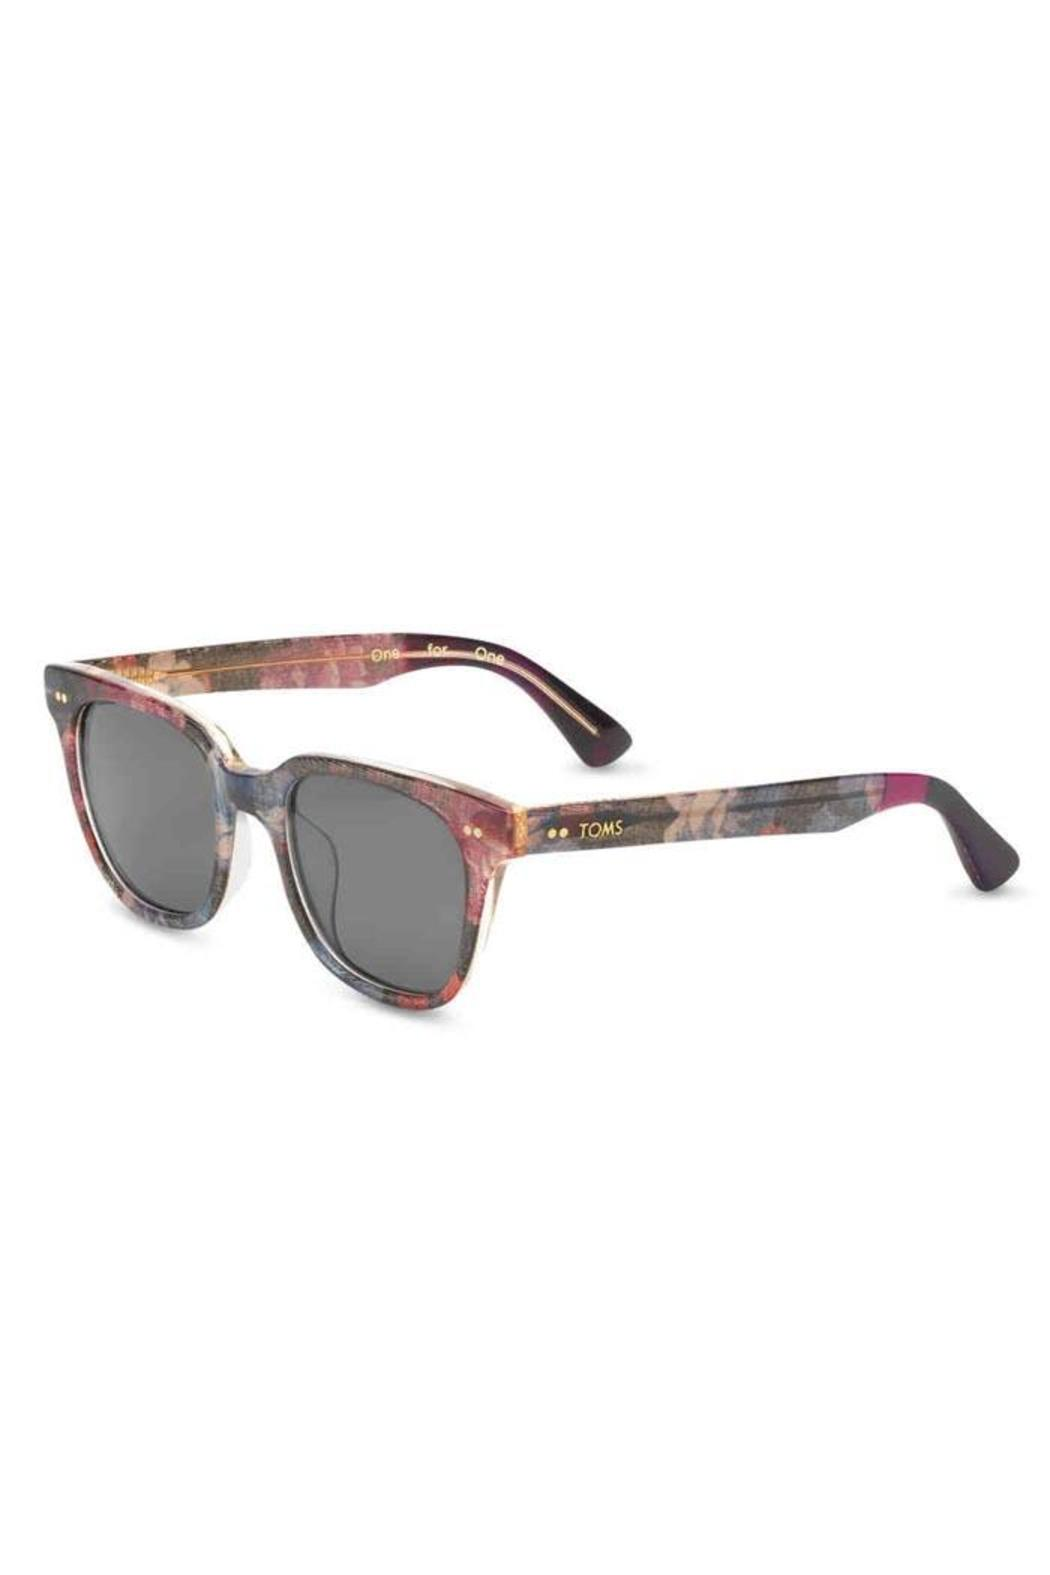 Memphis Sunglasses  toms toms memphis sunglasses from hawaii by wings hawaii tiques